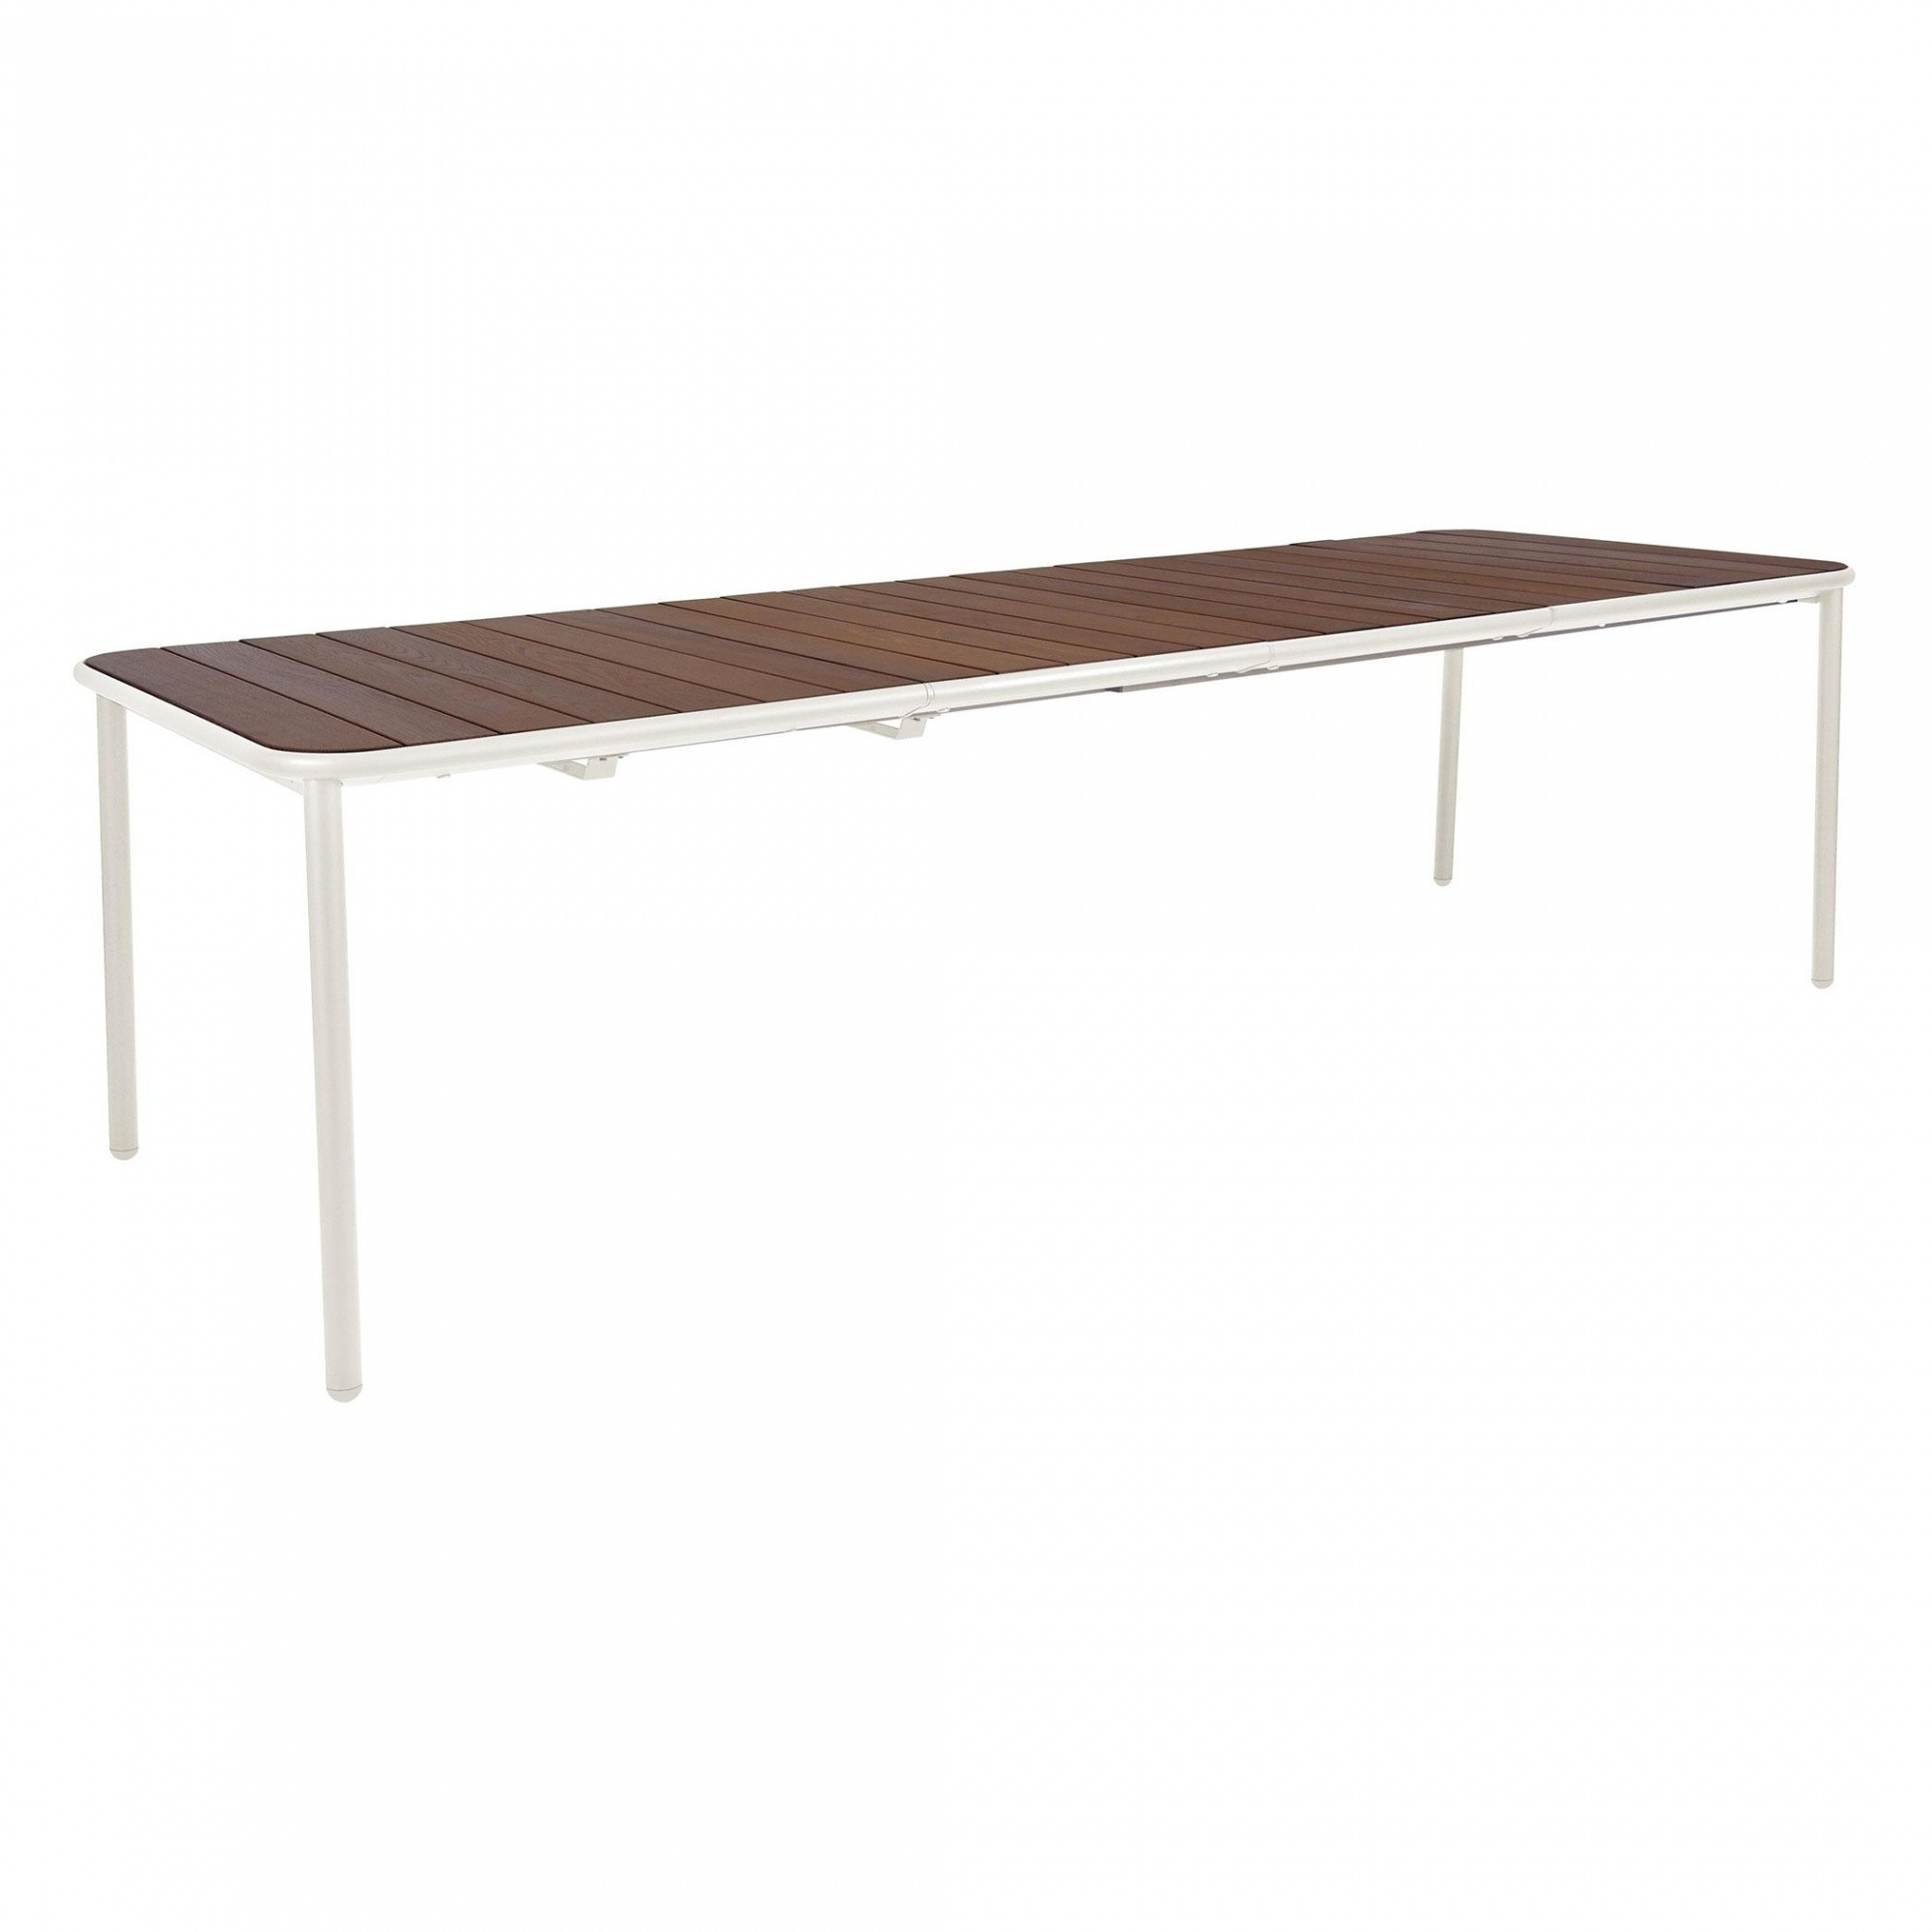 Emu Yard Ash Wood Outdoor Table Extendable White Top